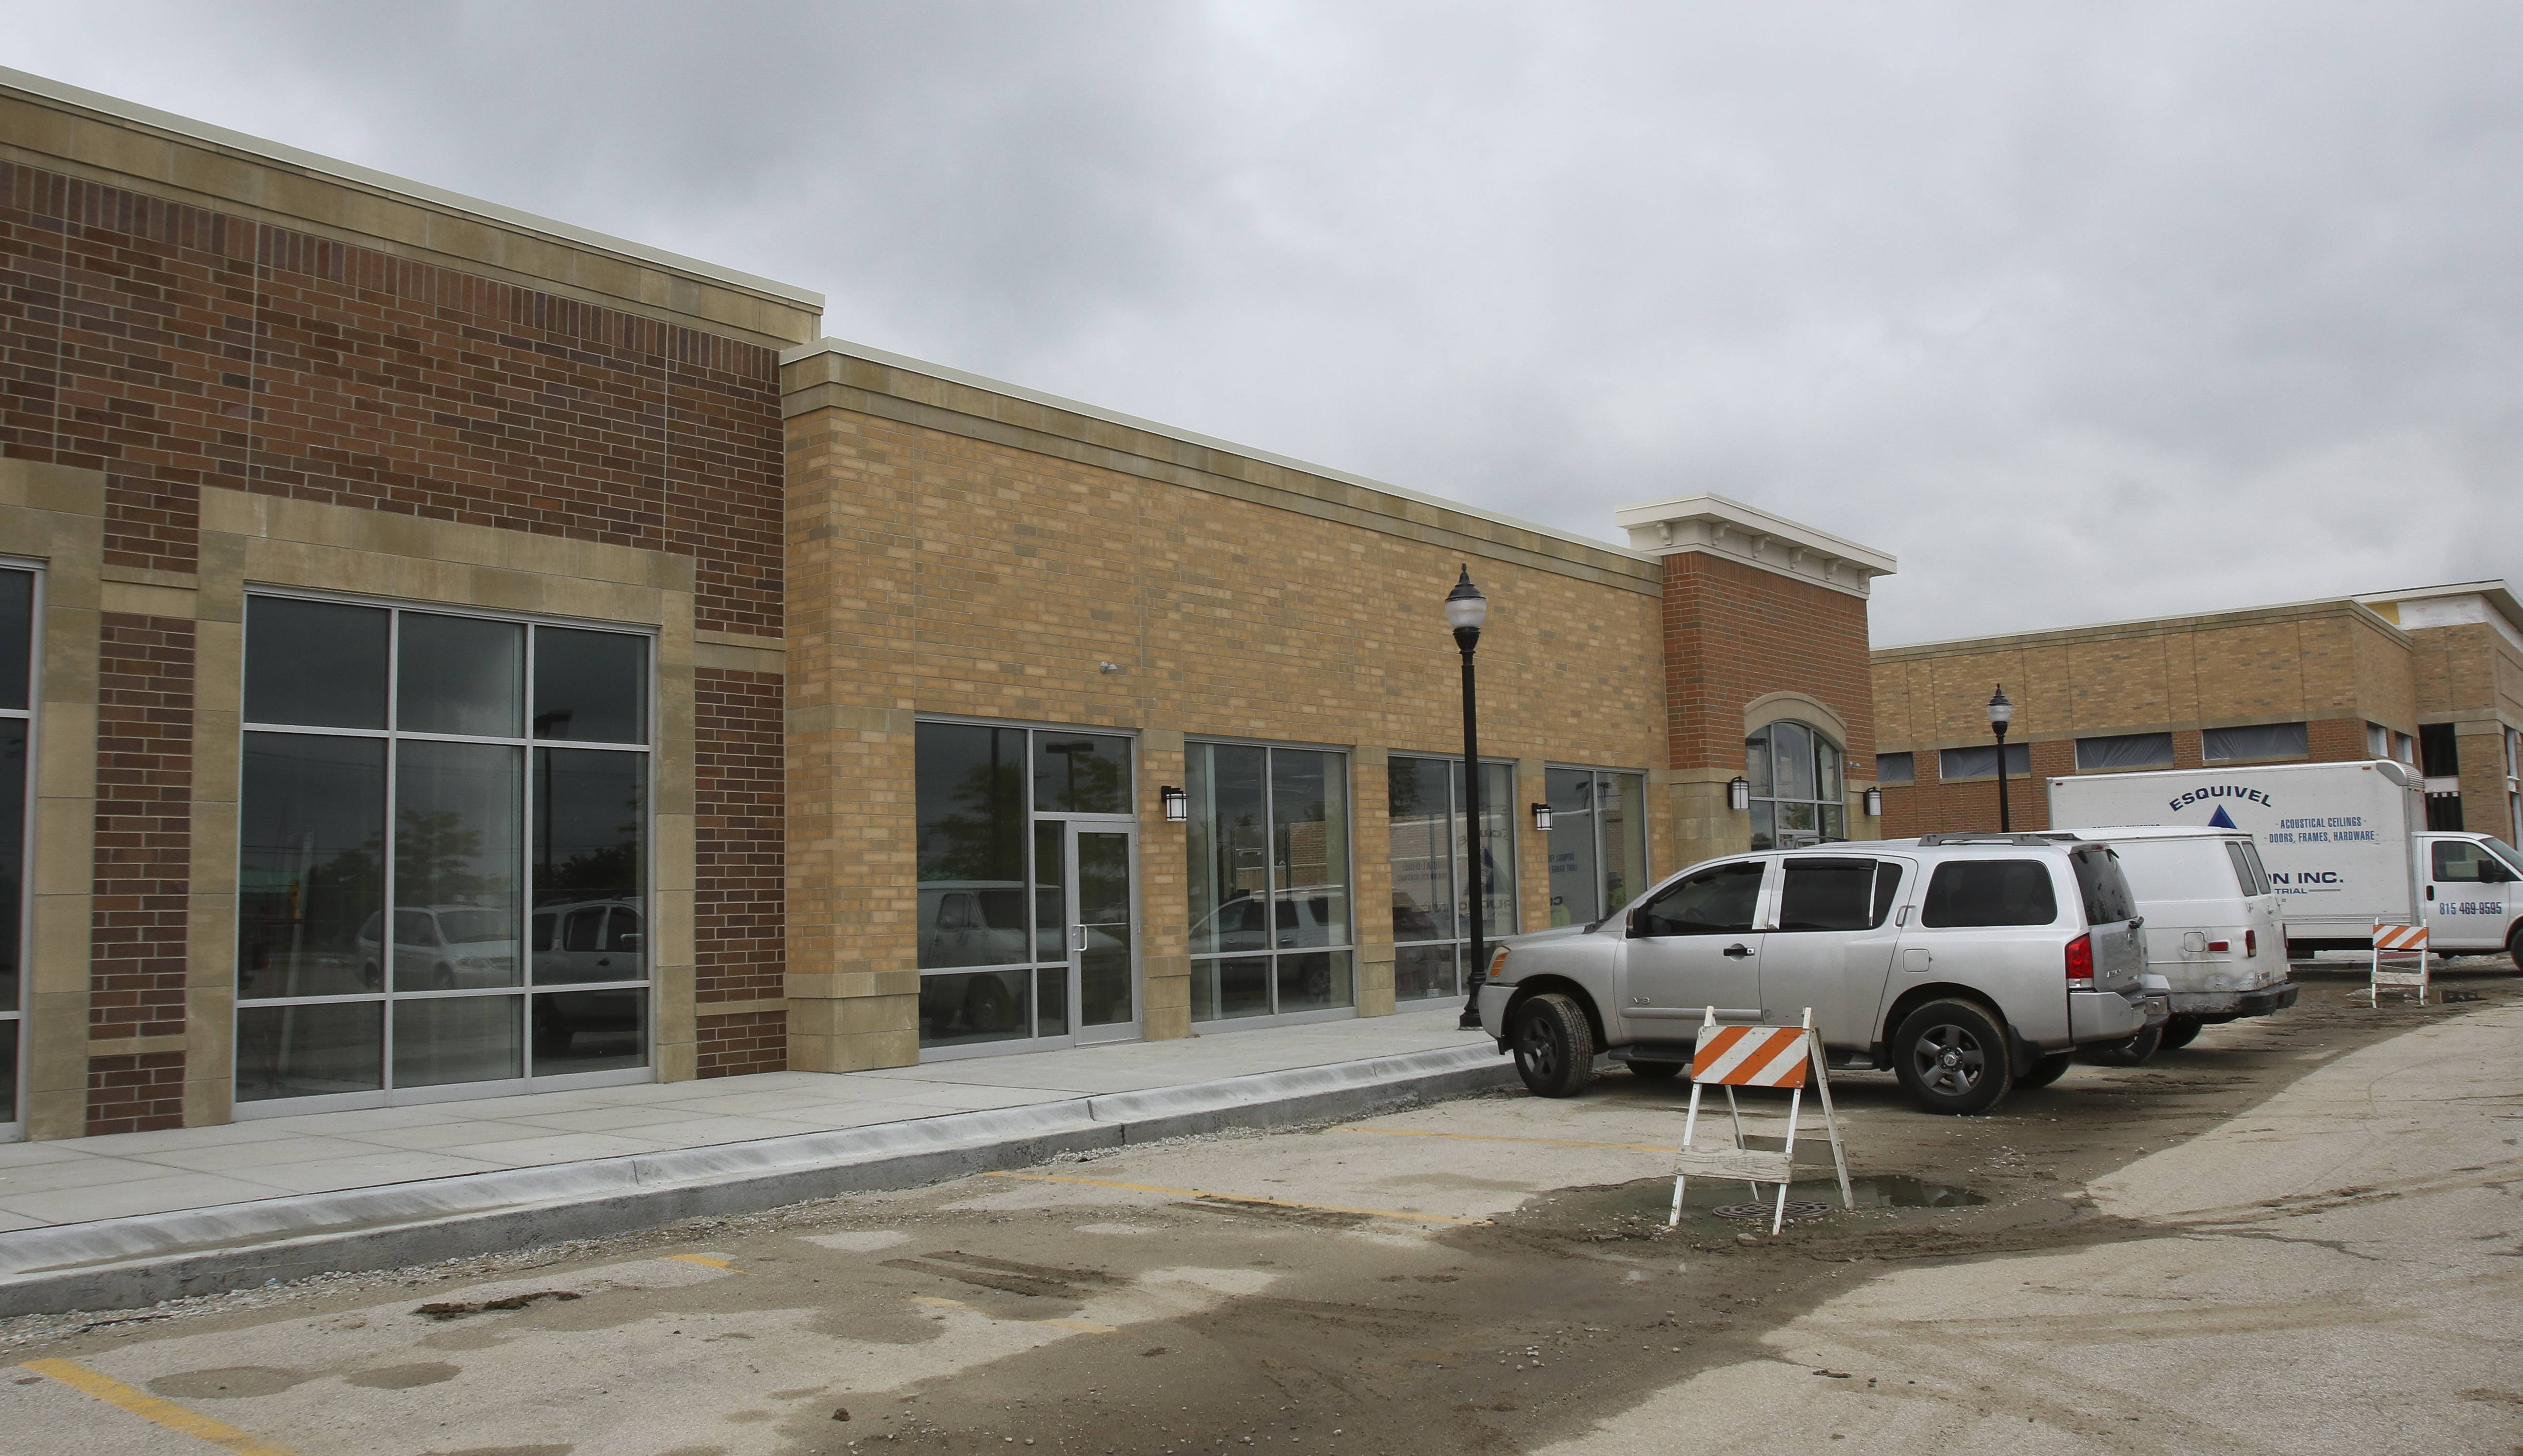 Ten Friends Blow Dry and Style House could be one of two Naperville hair salons allowed to seek a new liquor license to sell up to two 12-ounce beers or two 6-ounce wines to guests. The salon plans to open this fall at 95th Street and Route 59.